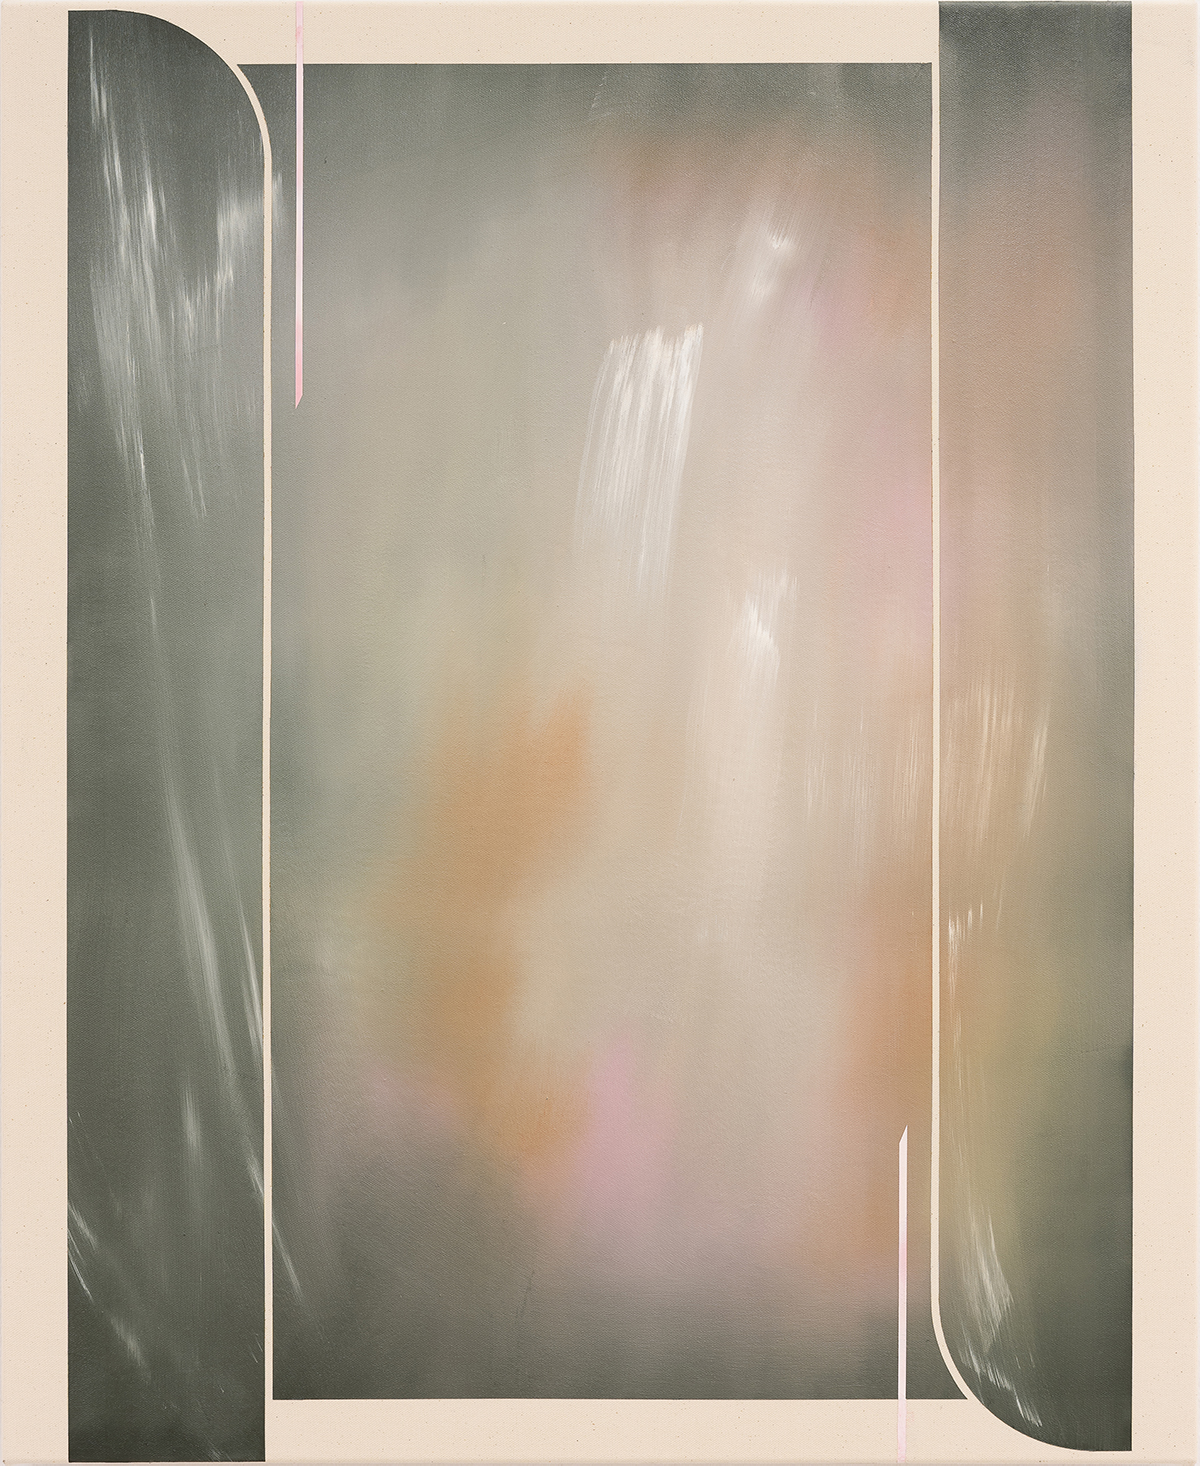 Kate Andrews, hoverbeam, 2021, Oil on canvas, 110 x 90 cm